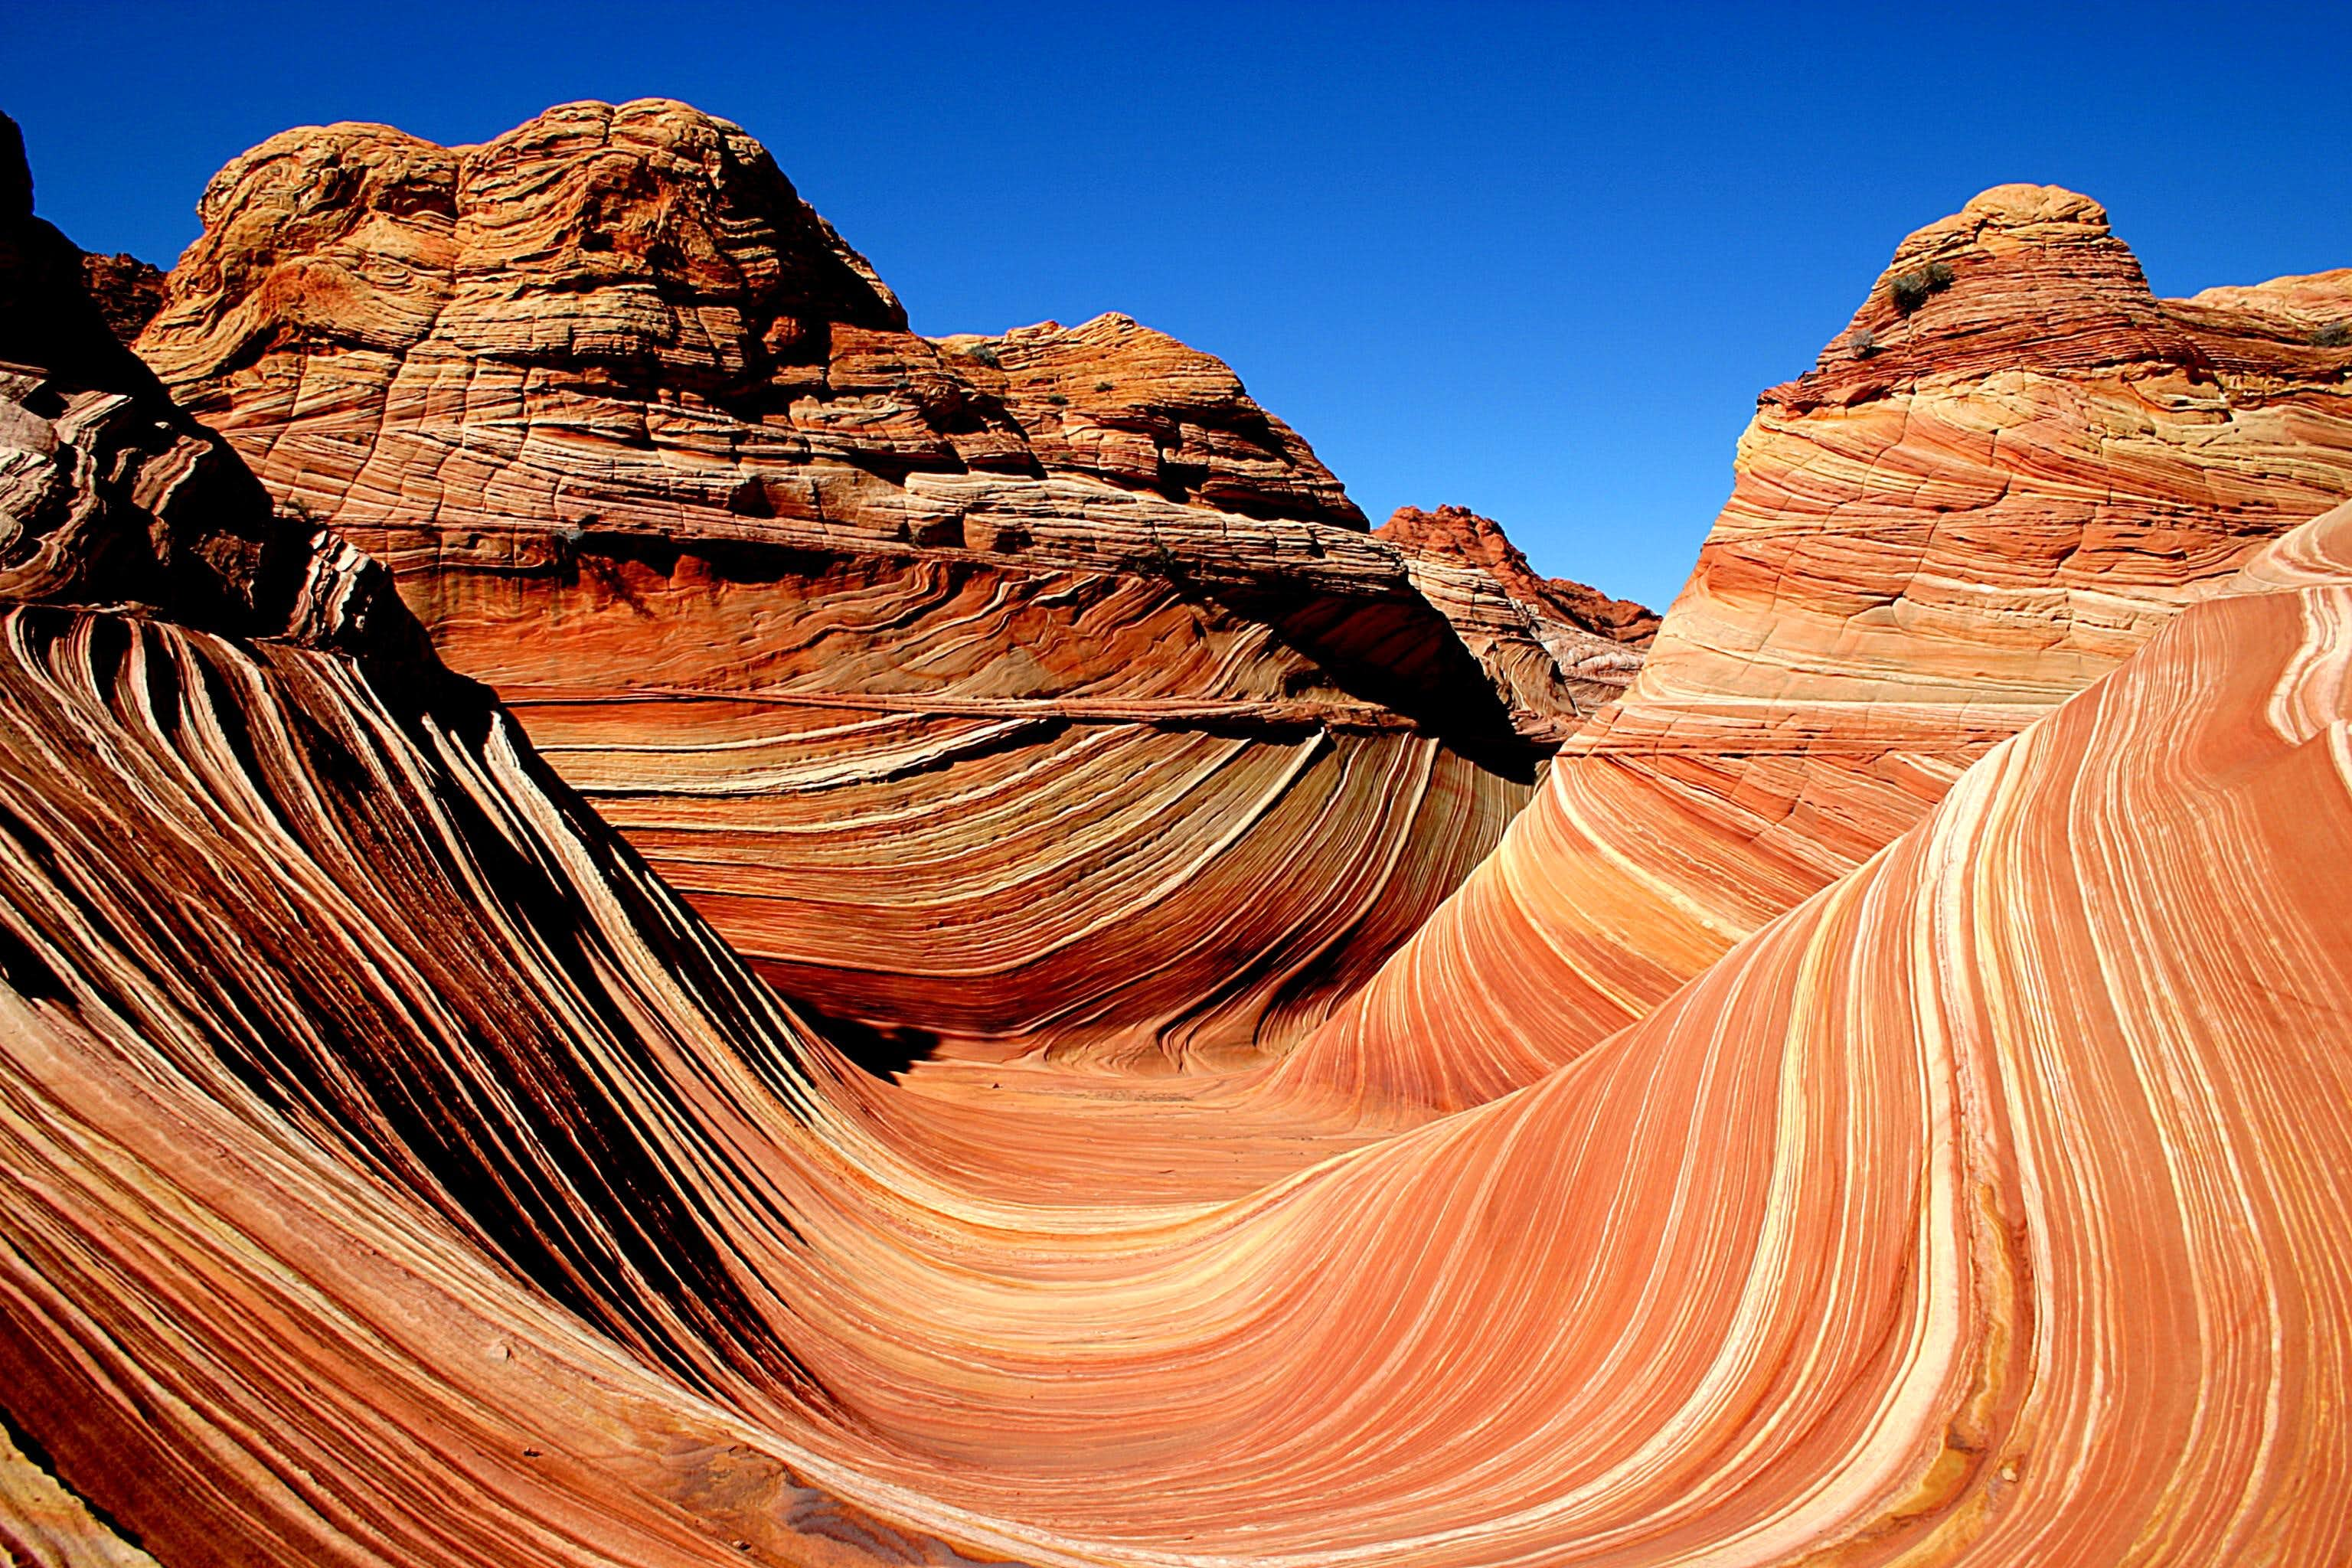 The Wave (Coyote Buttes)